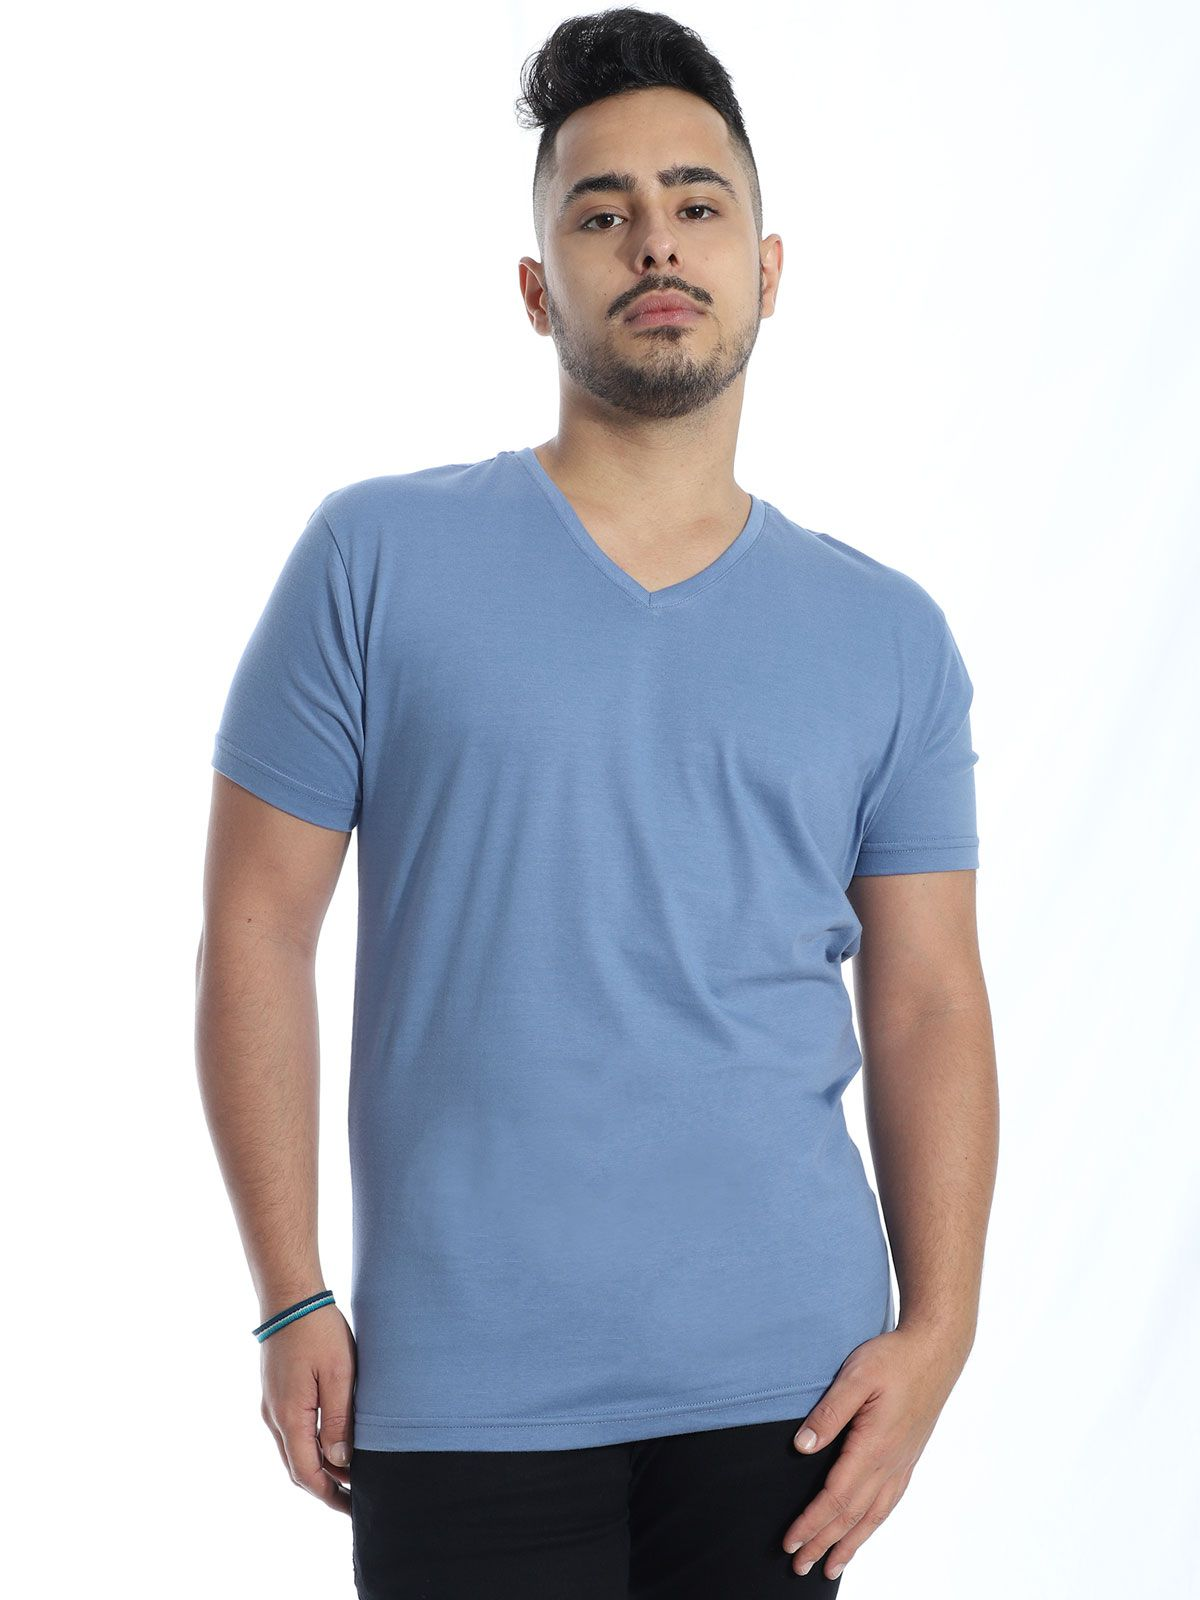 Camiseta Anistia Slim Fit Decote V. Lisa Indigo